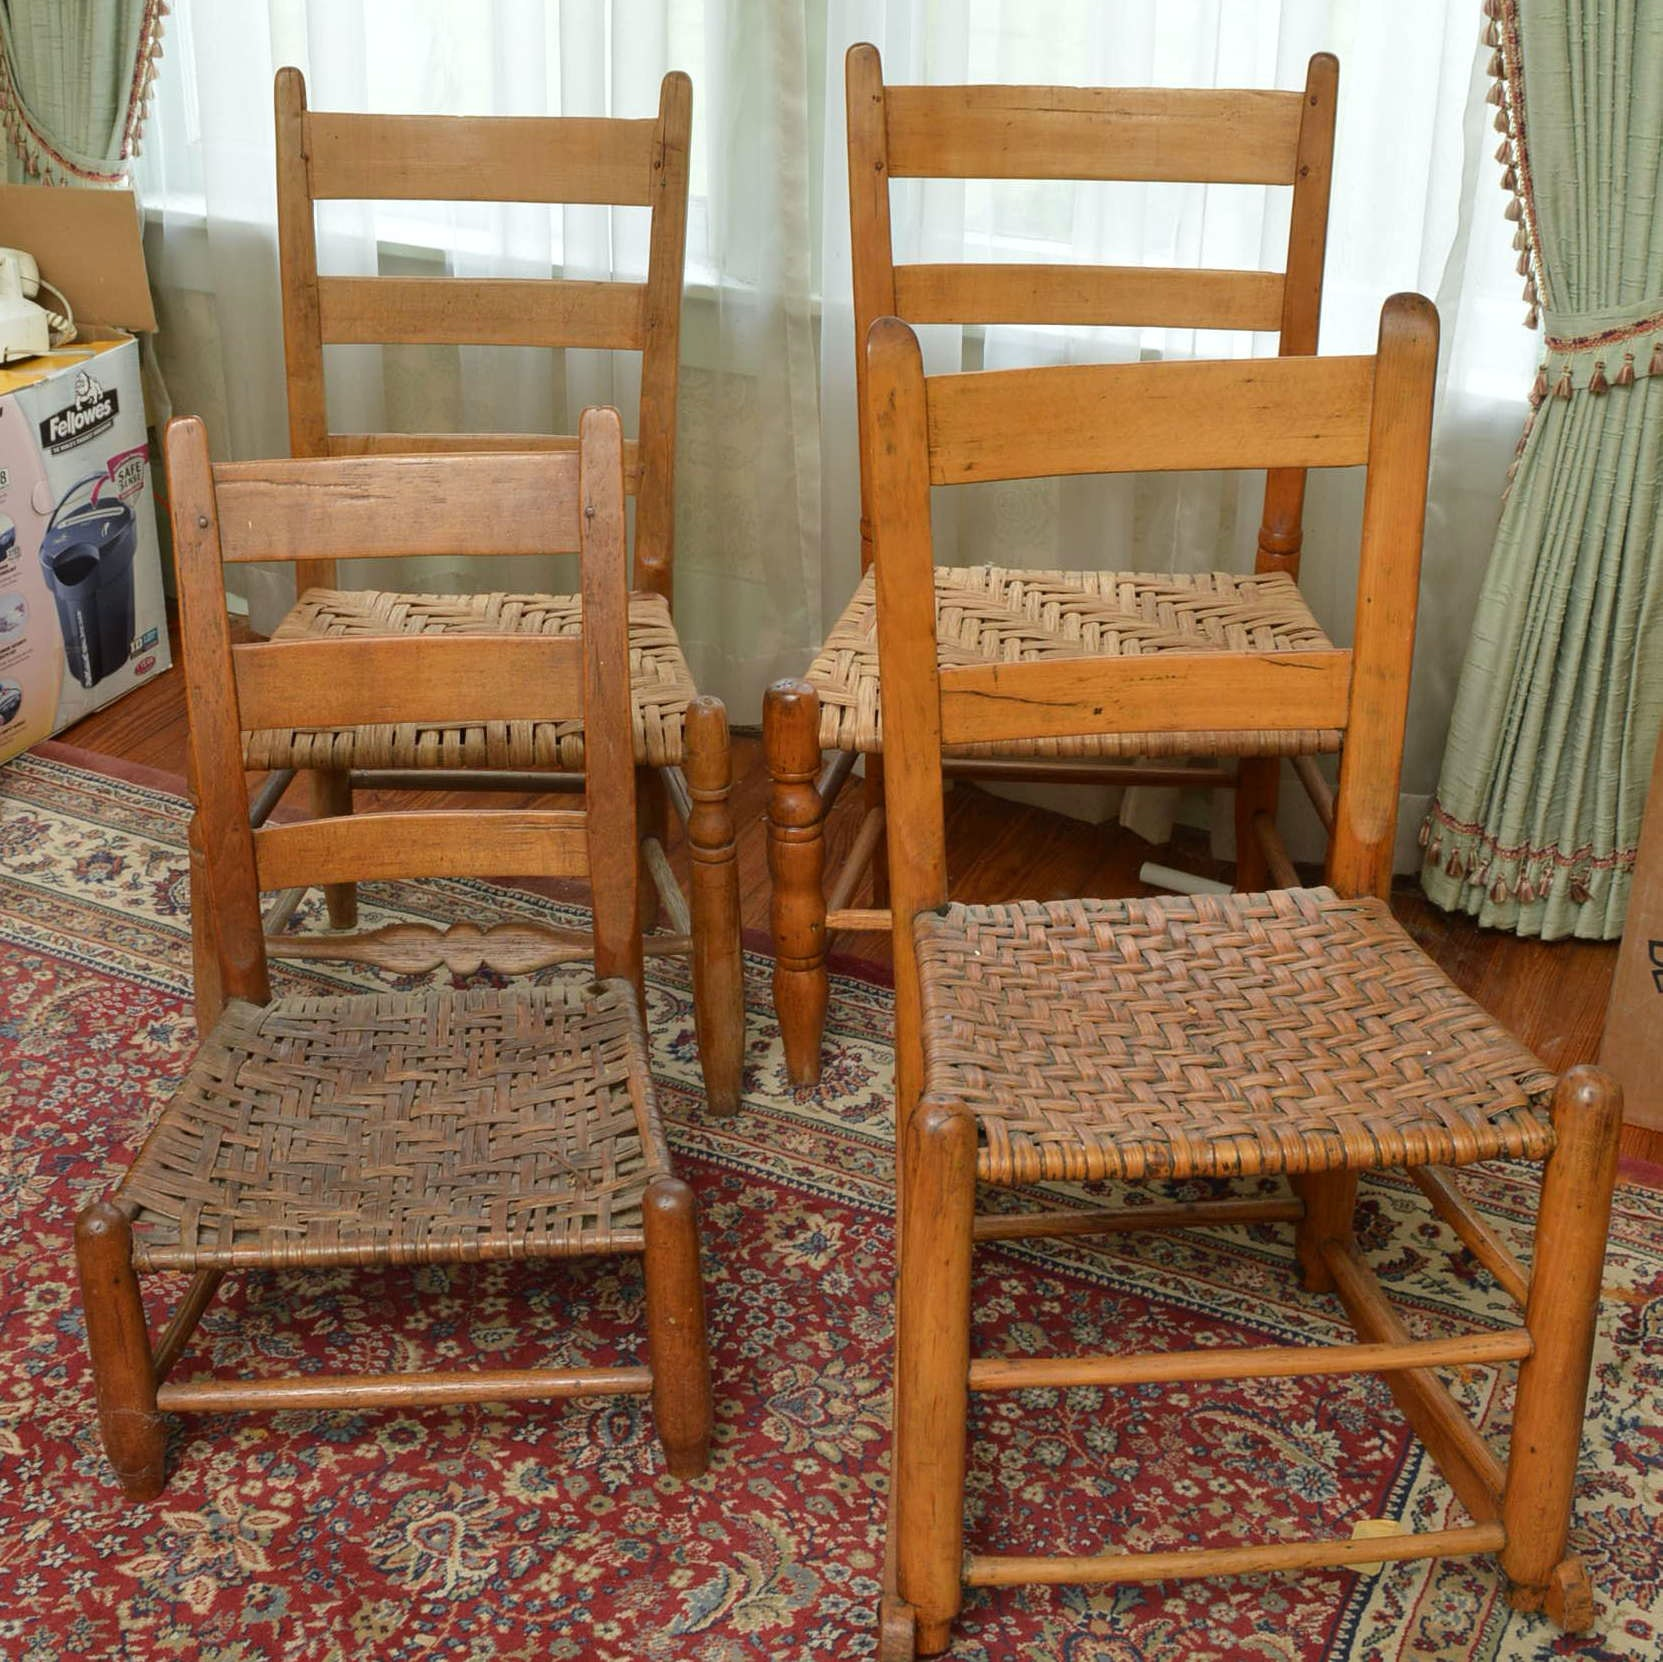 Woven Seat Chairs